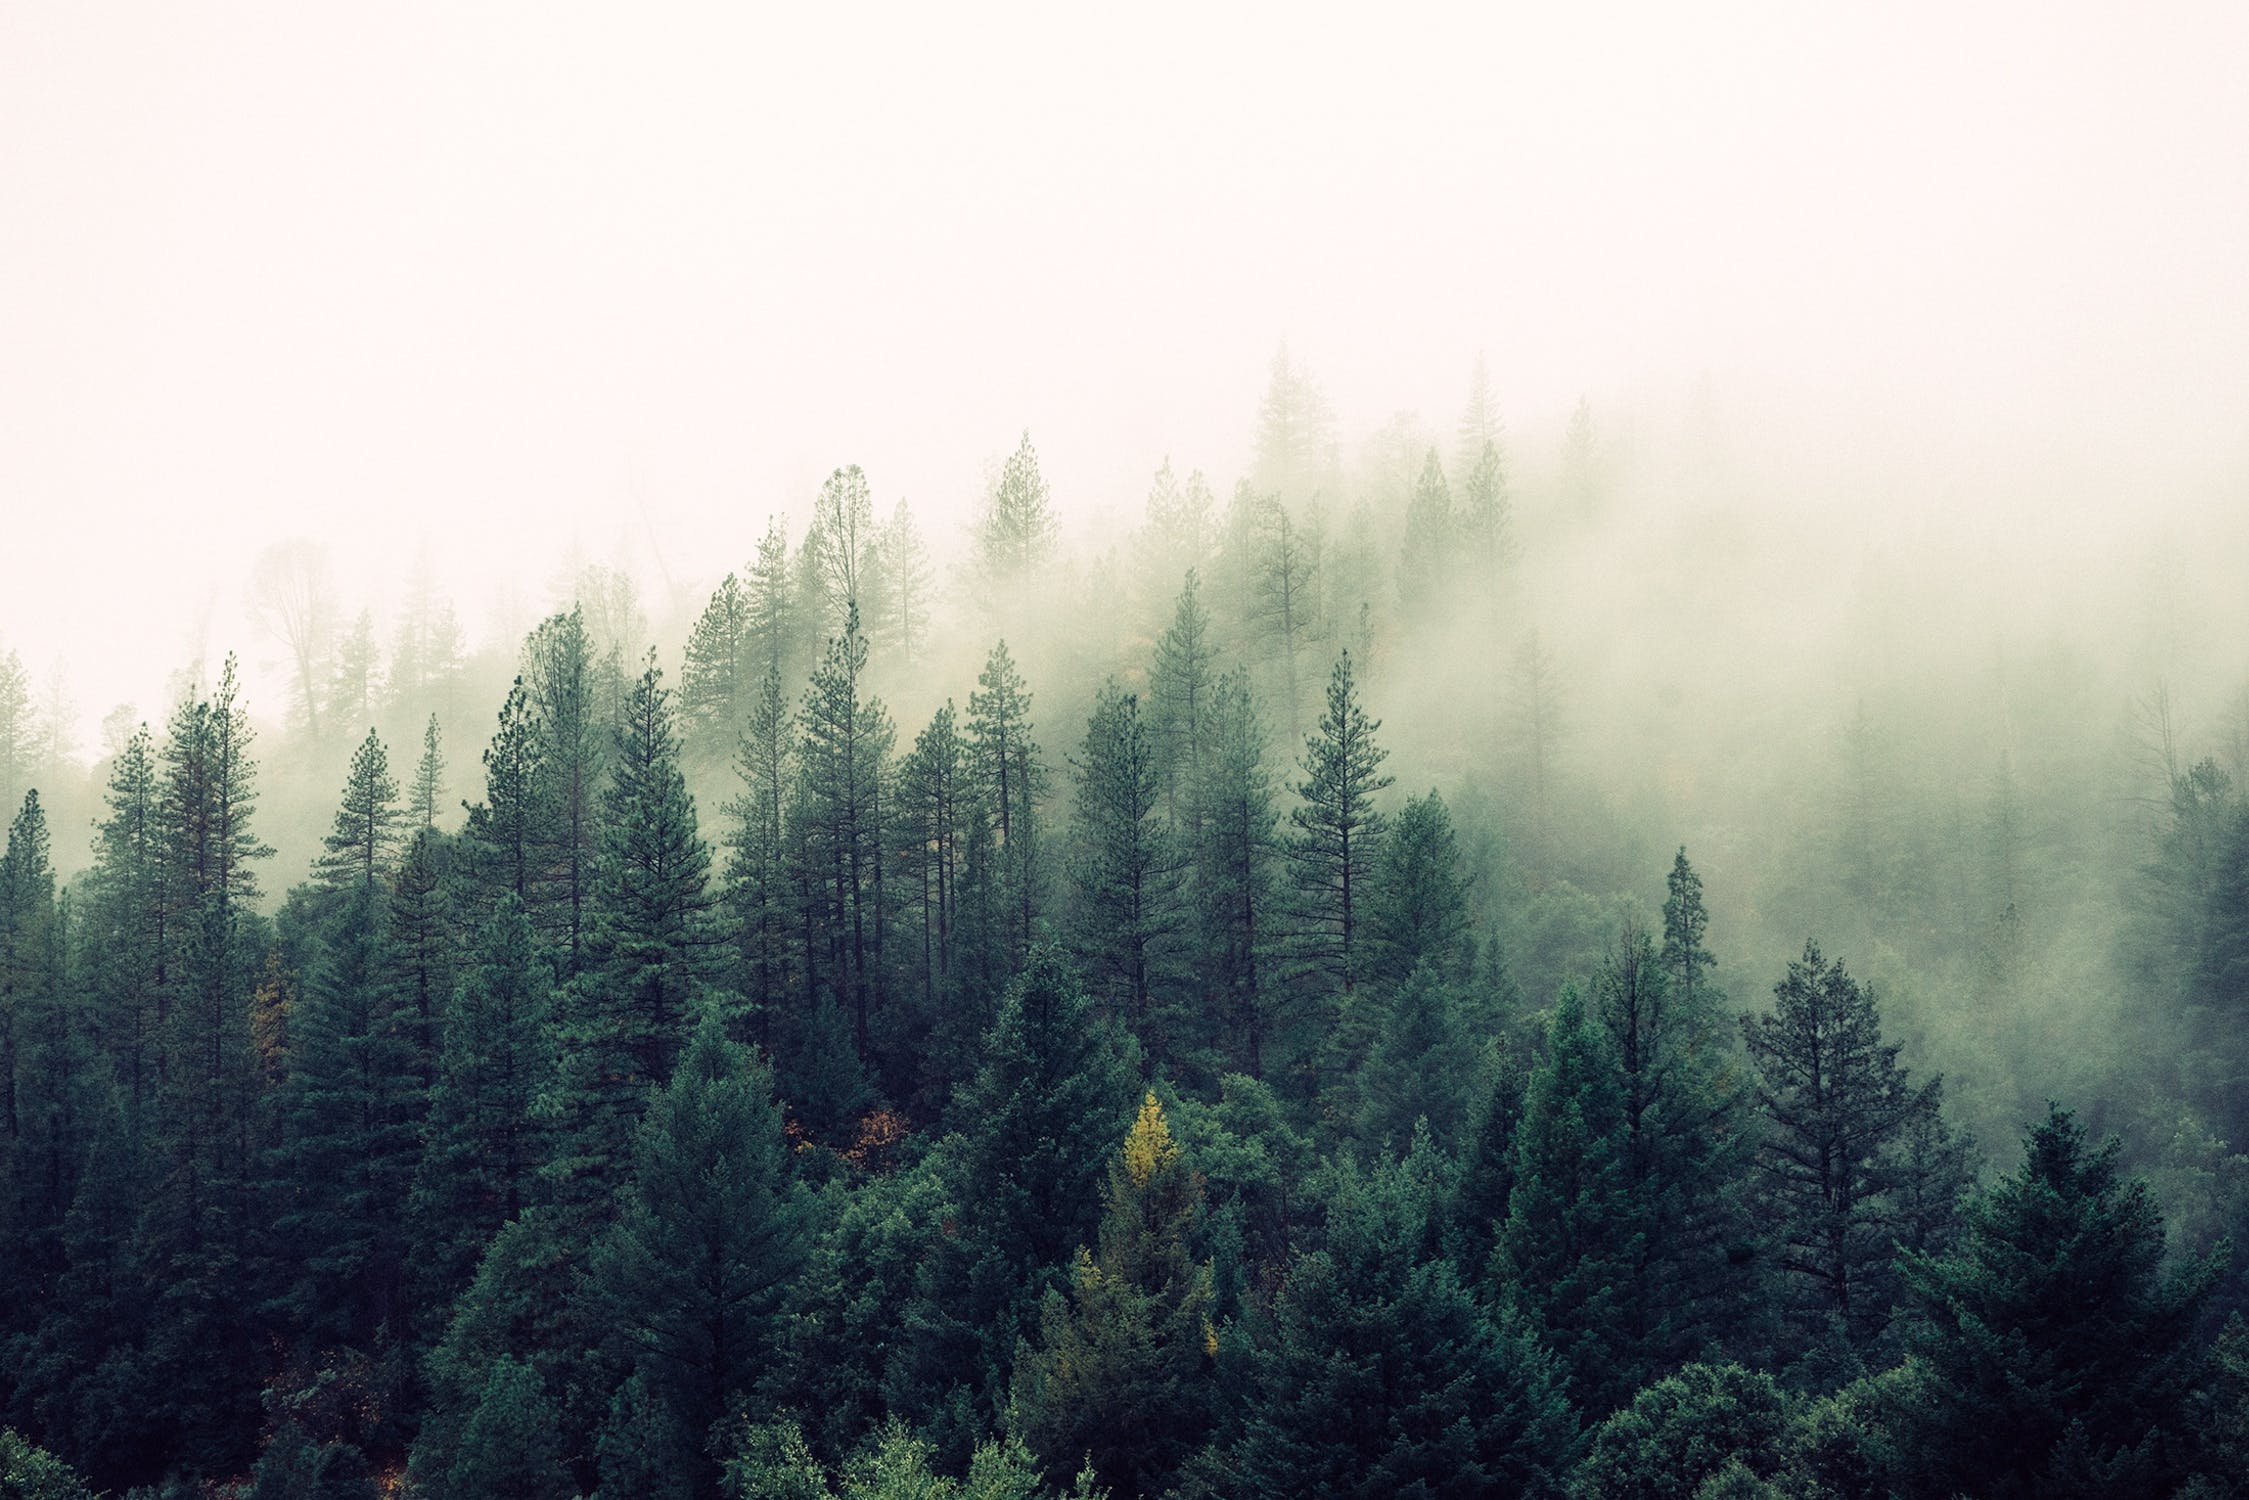 fog rolling over pine trees